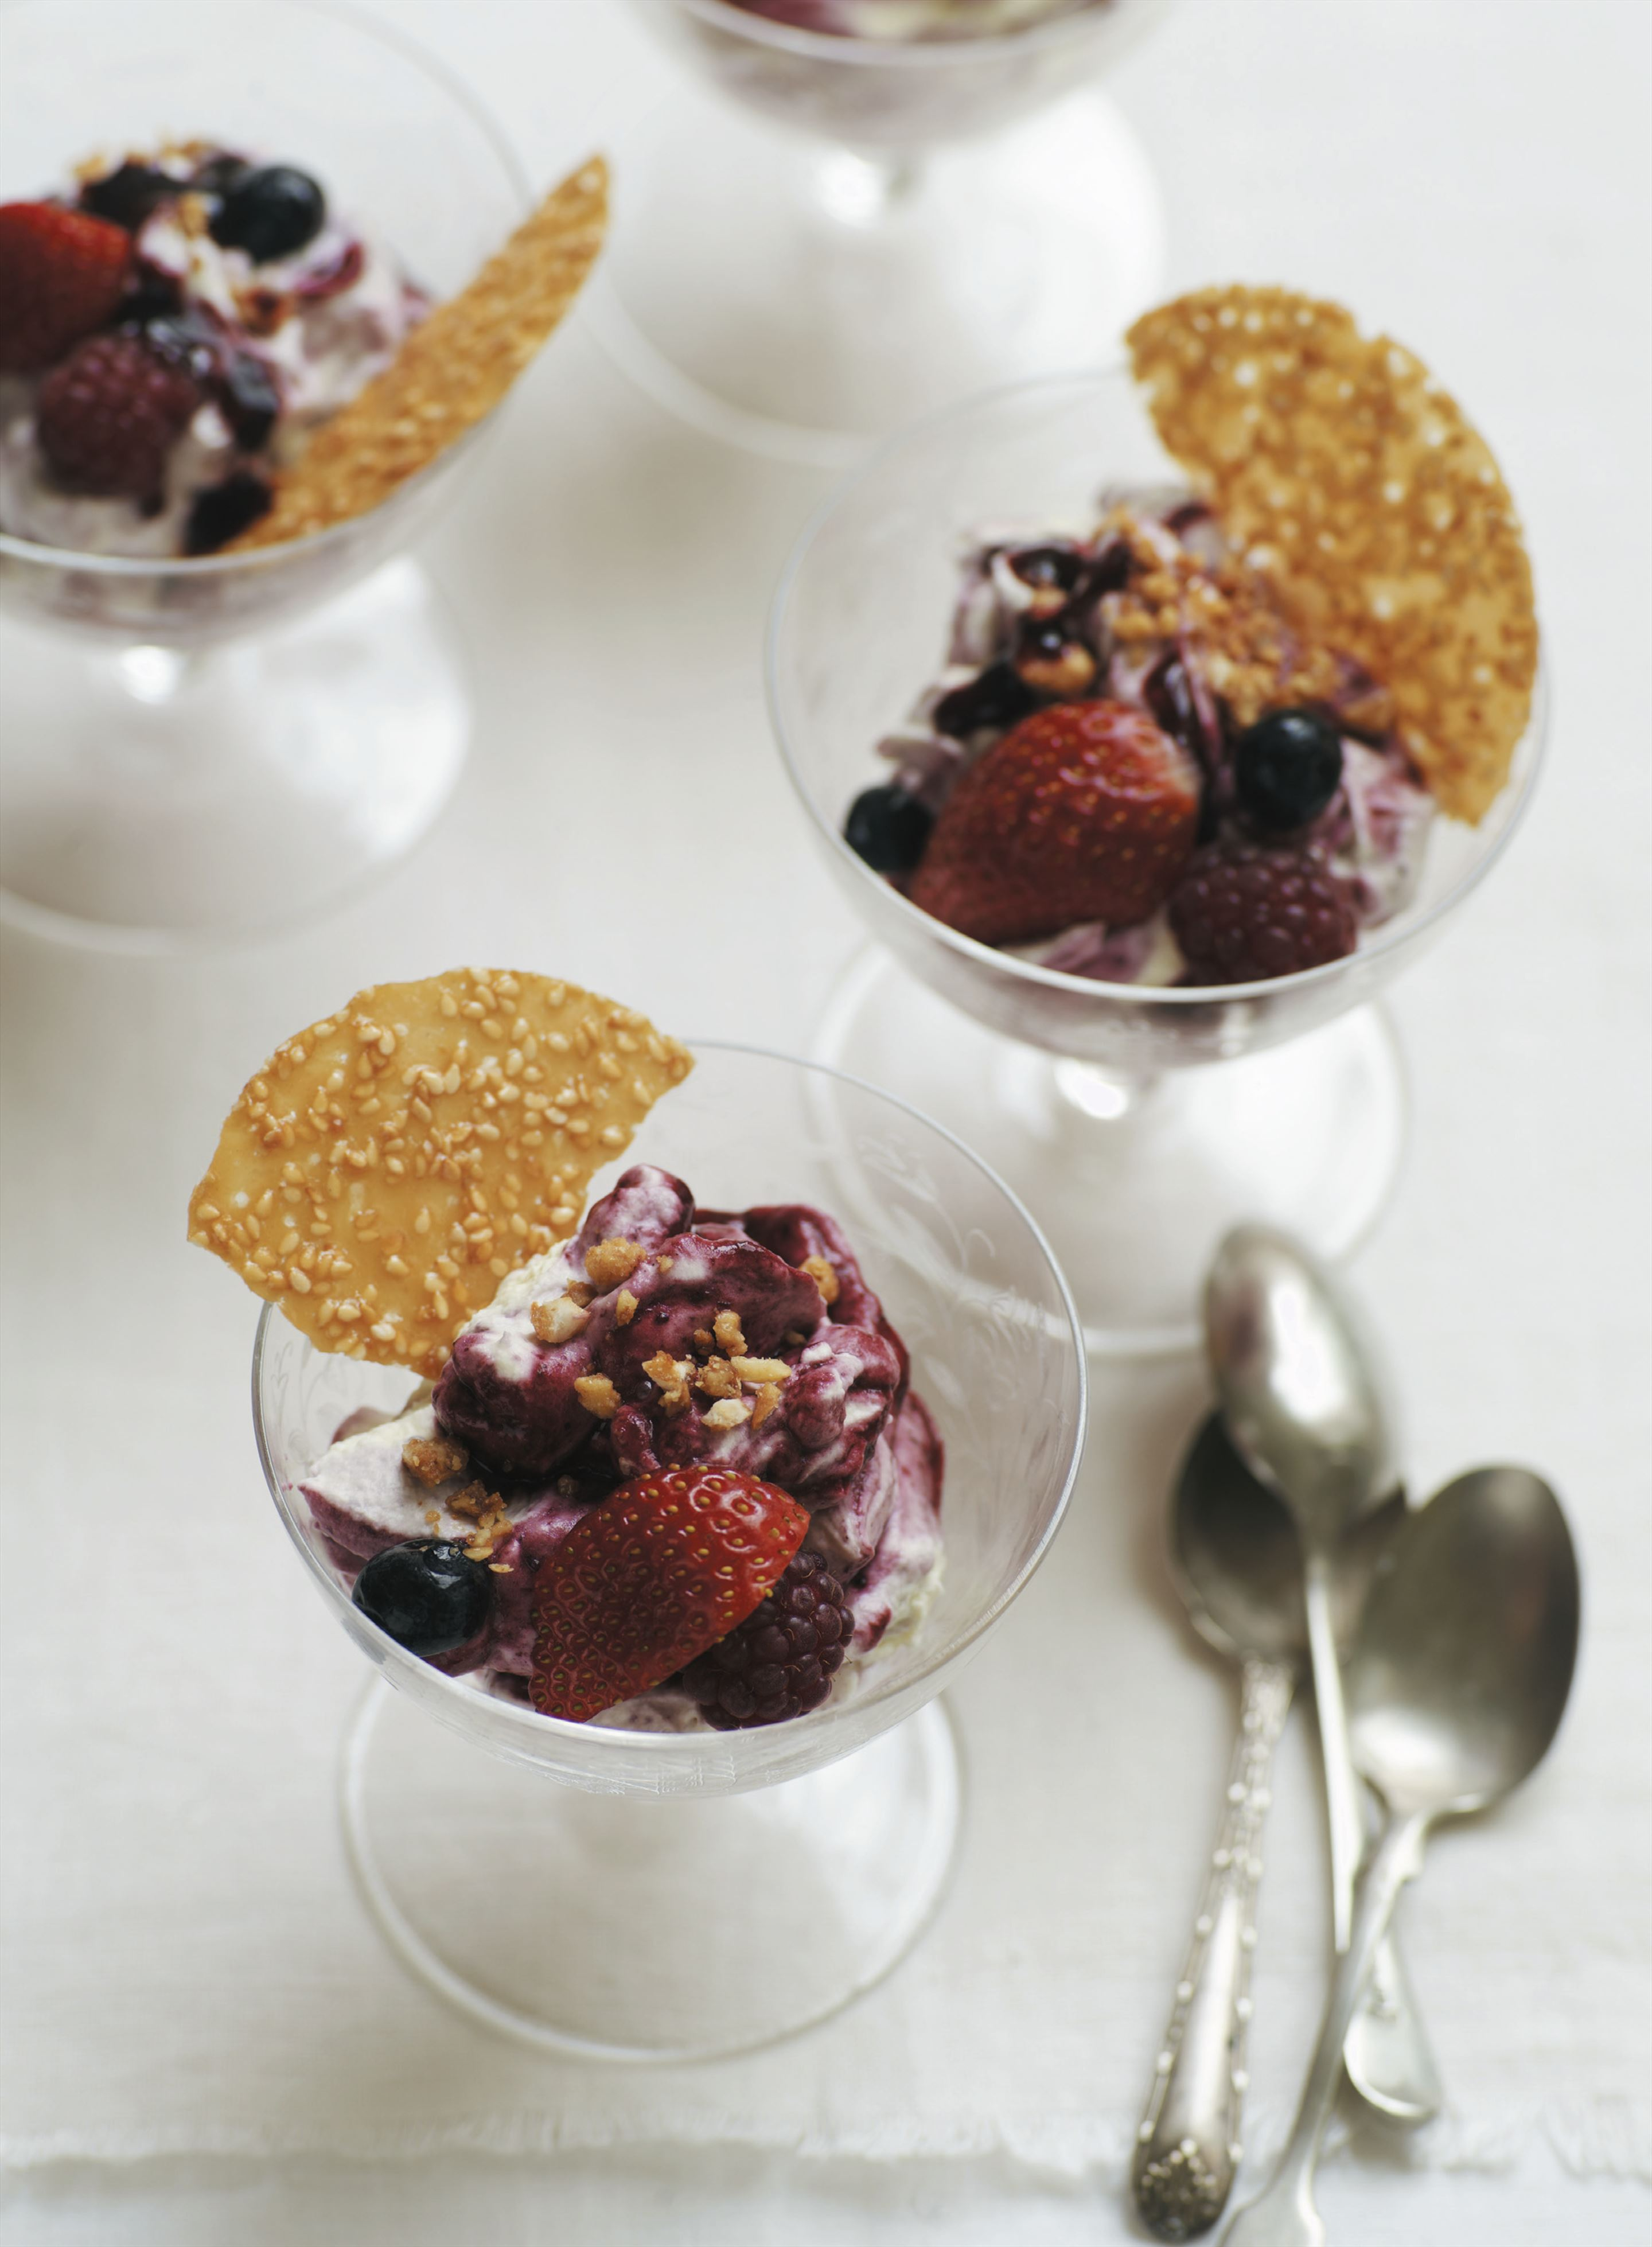 Rose-flavoured berry fool with mascarpone